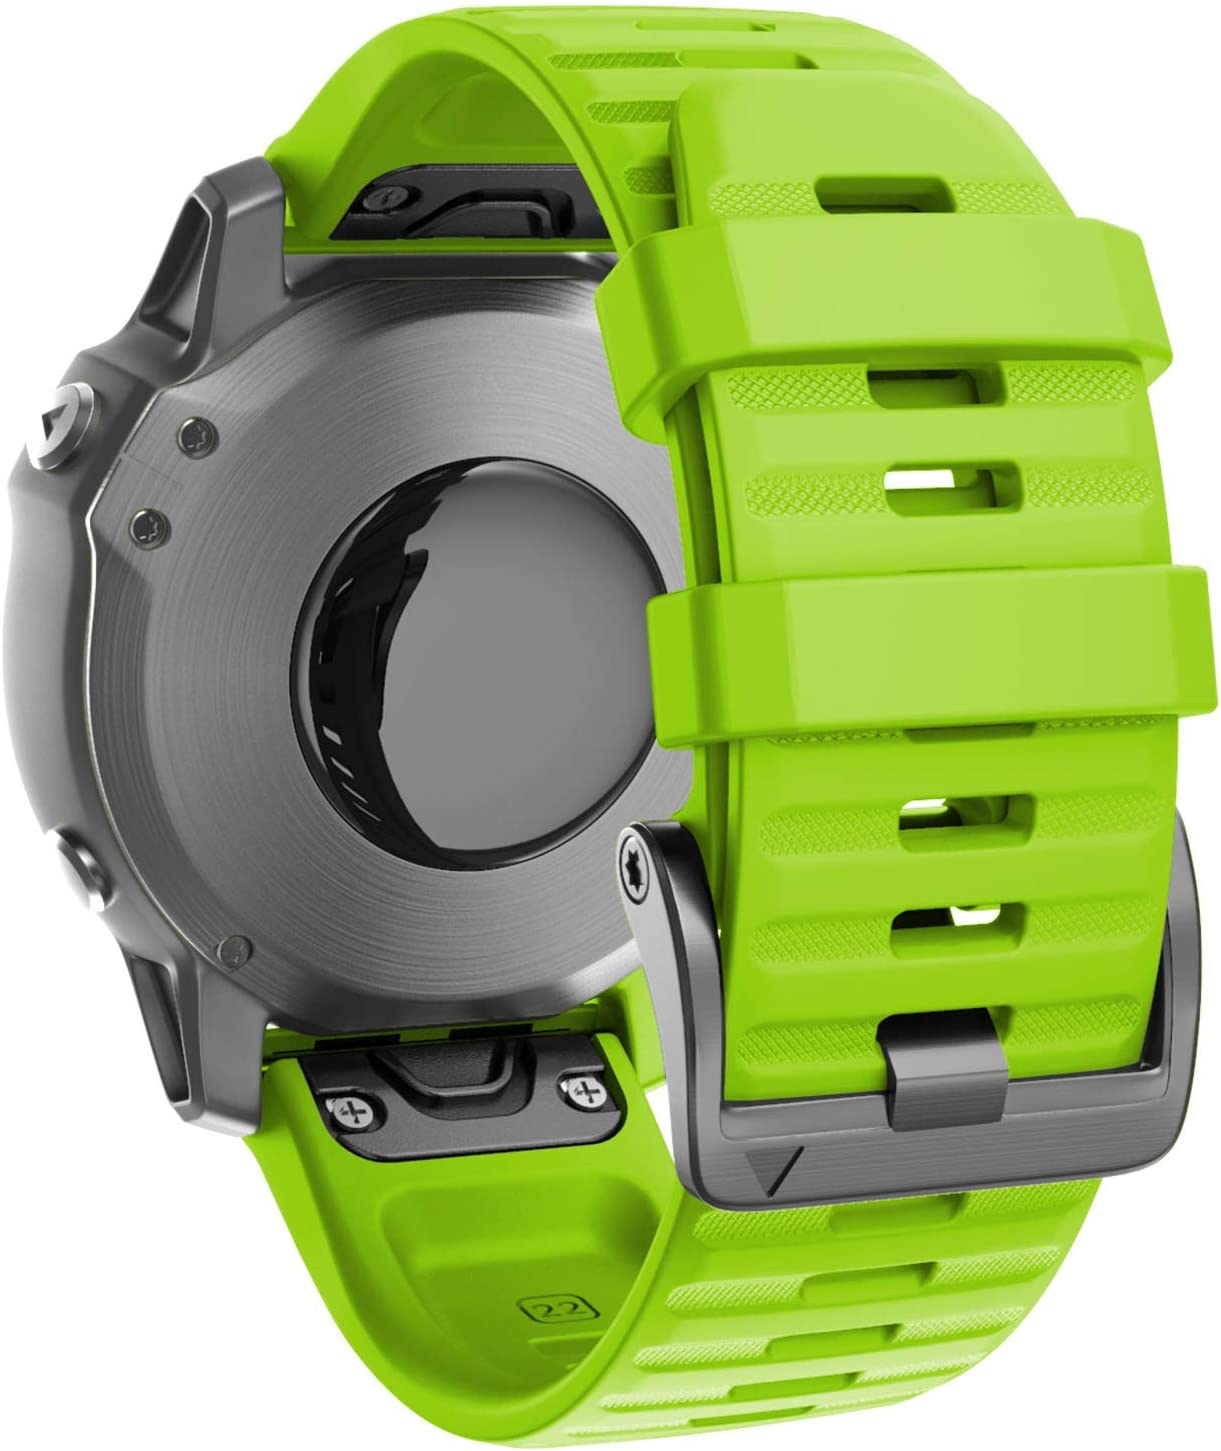 ANCOOL Compatible with Fenix 6 Bands 22MM Easy-fit Soft Silicone Watch Band Replacement for Fenix 6 Pro/Fenix 5/Fenix 5 Plus/Approach S60/S62/Forerunner 945 Smartwatches (Green)